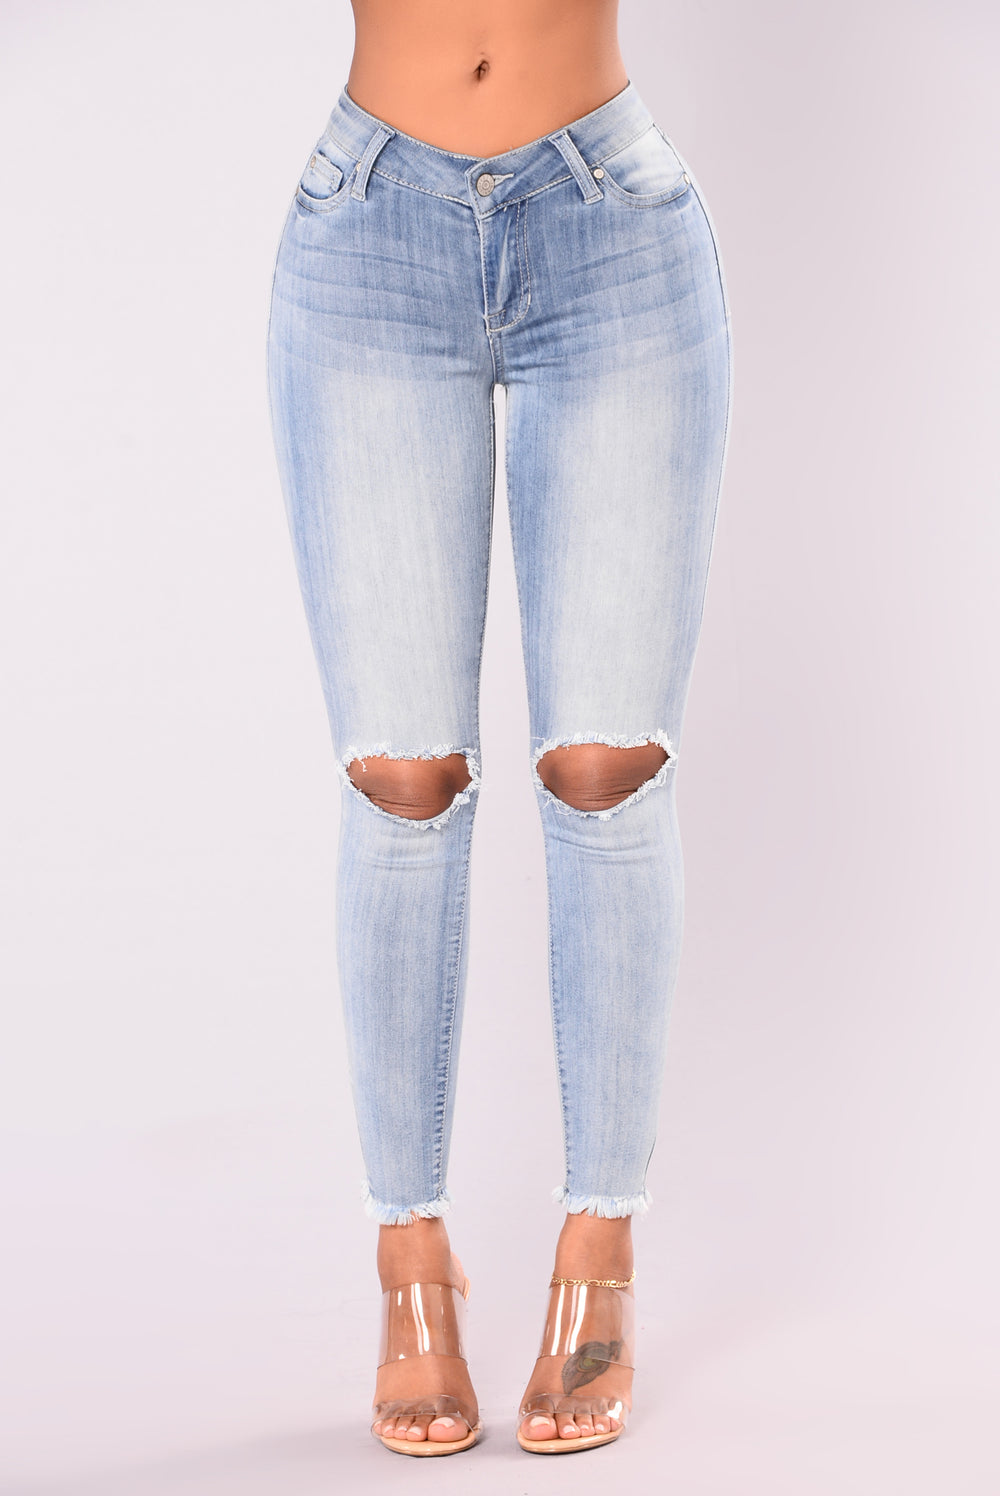 Mind Your Manners Ankle Jean - Medium Blue Denim